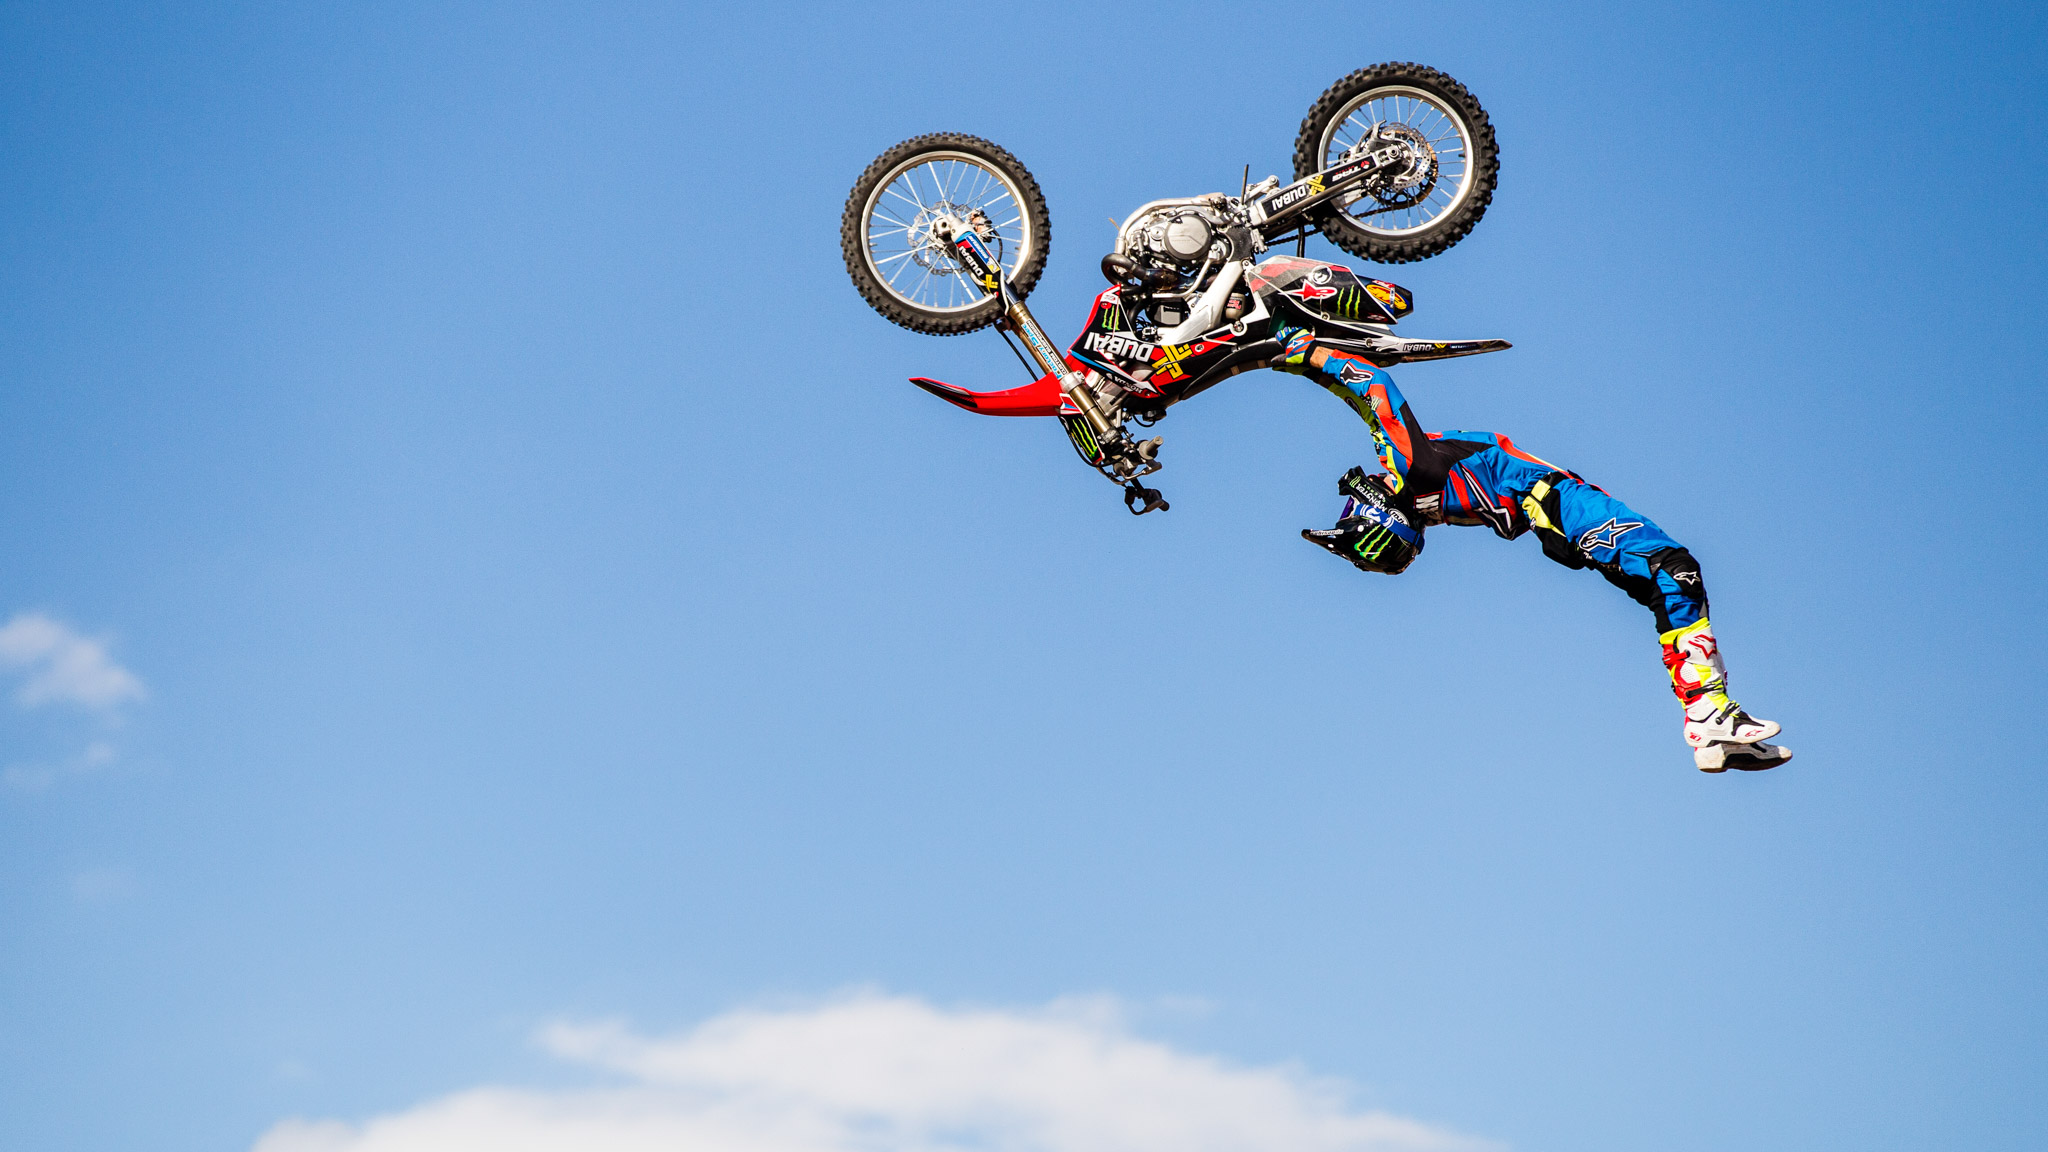 Josh Sheehan: Moto X Best Trick/Freestyle